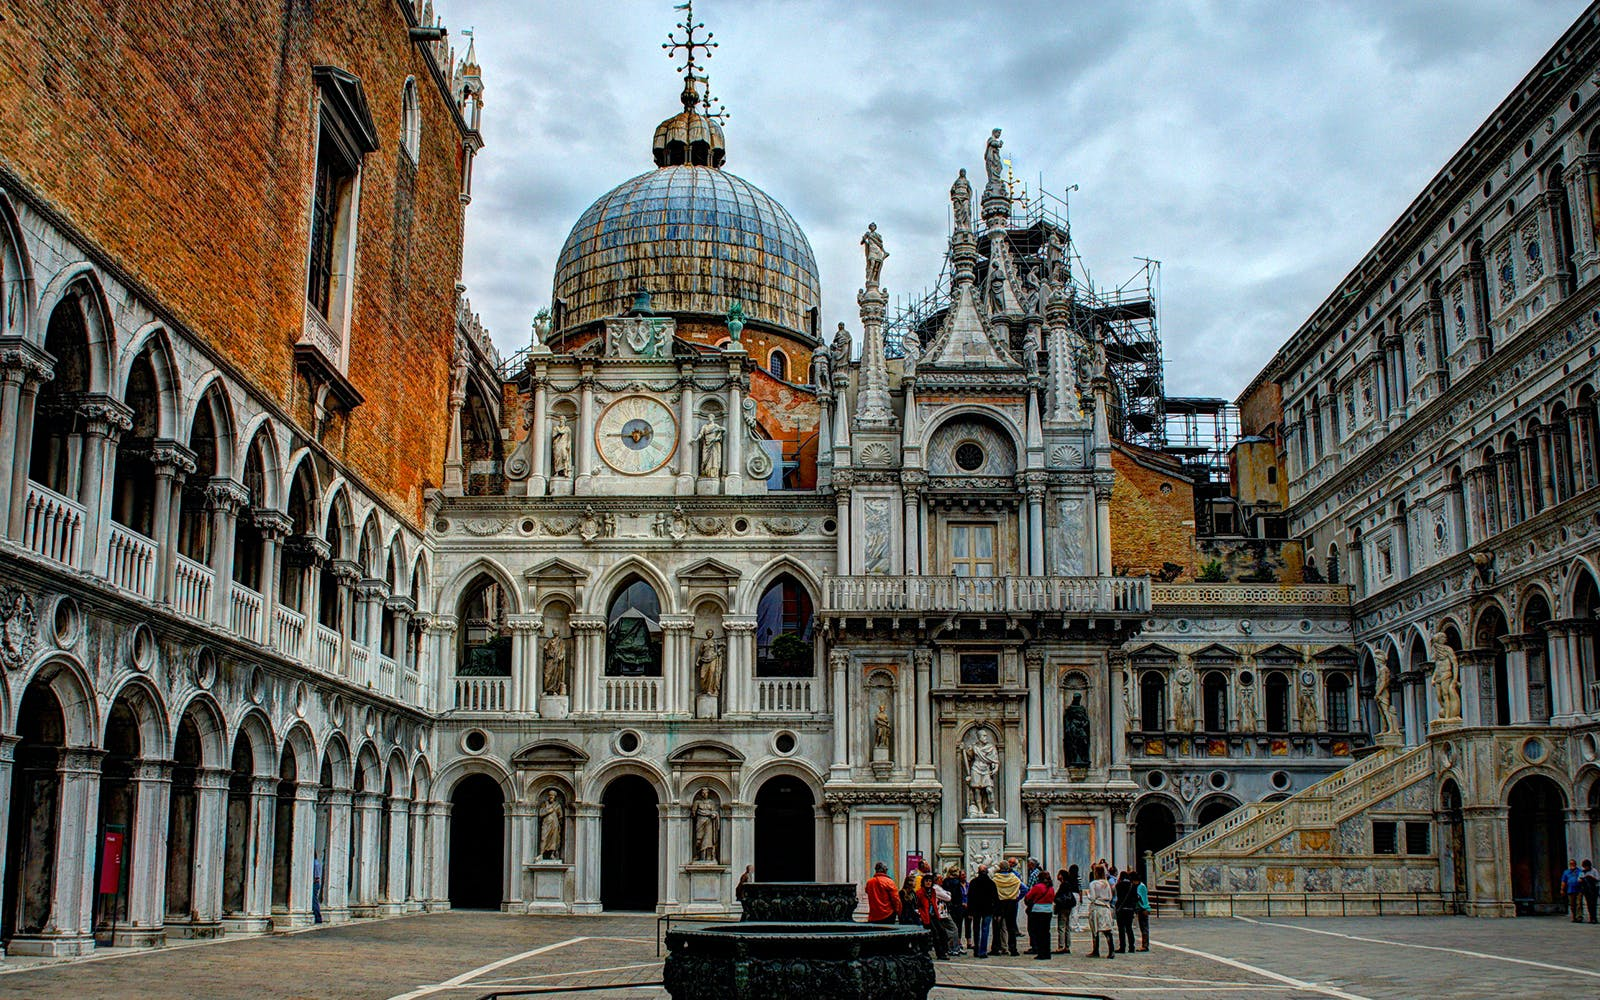 Venice Walking Tour & Doge's Palace Skip The Line Access